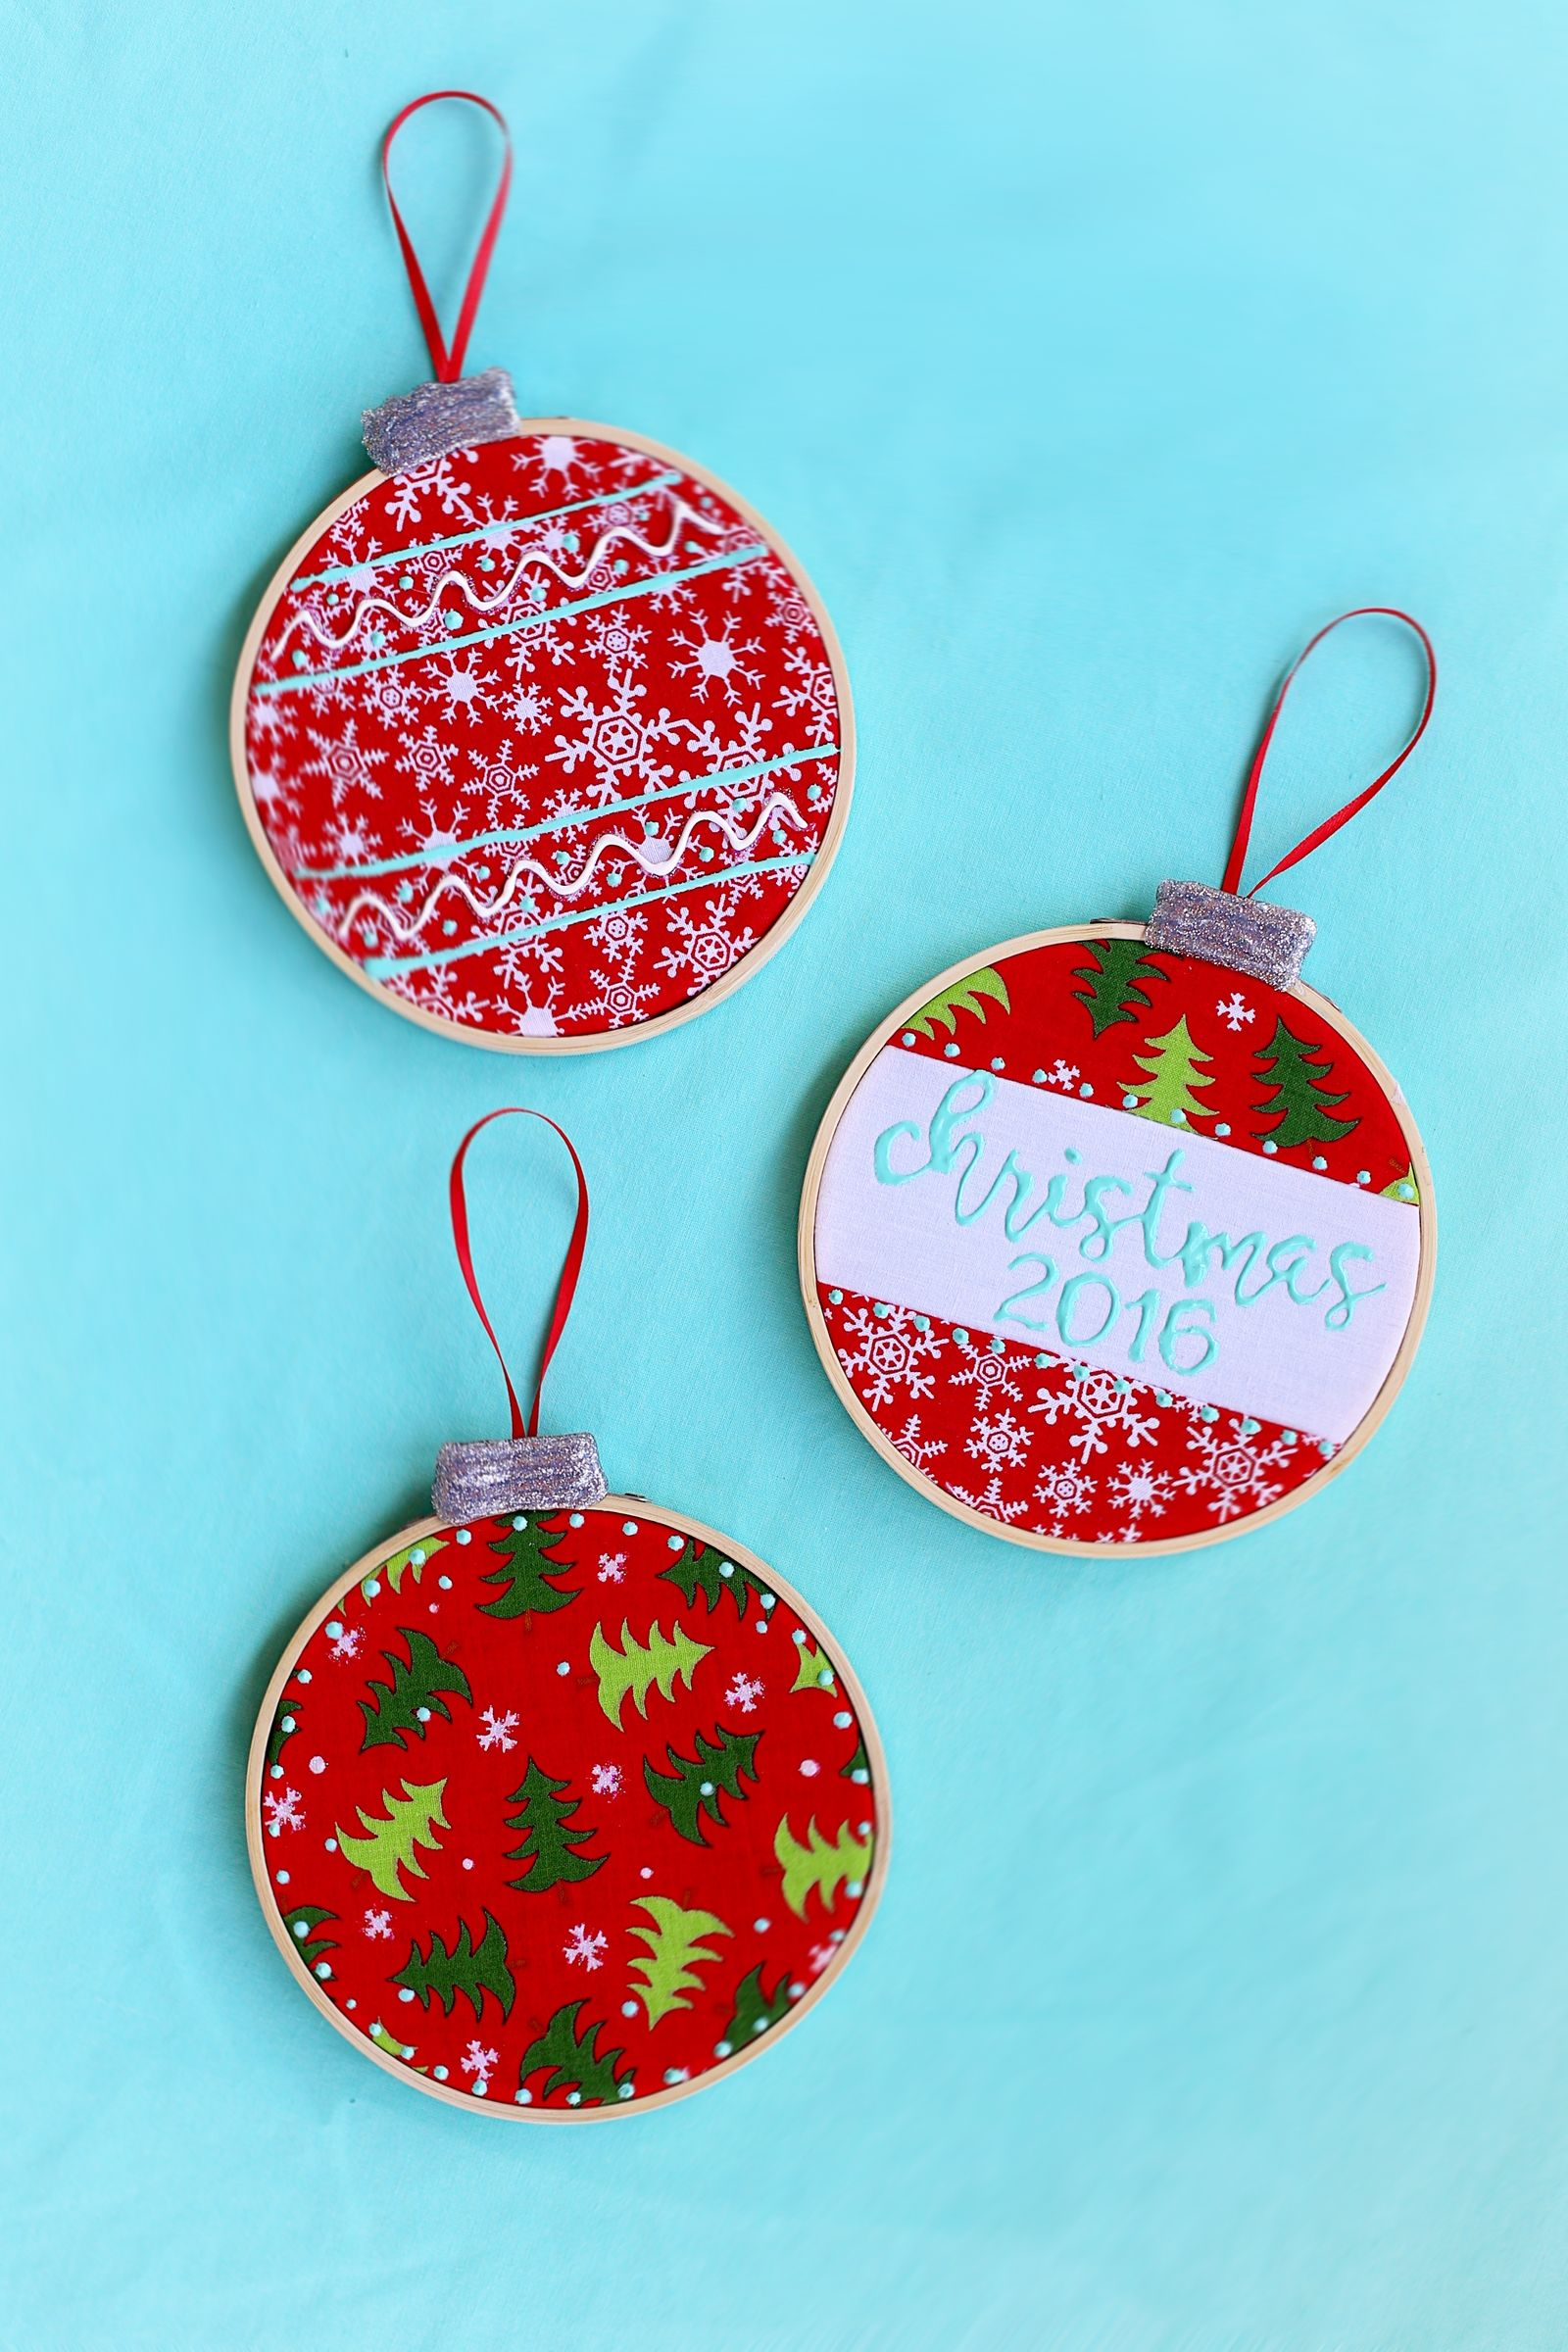 Embroidery Hoop Ornaments DIY with SugarBee Crafts This is the